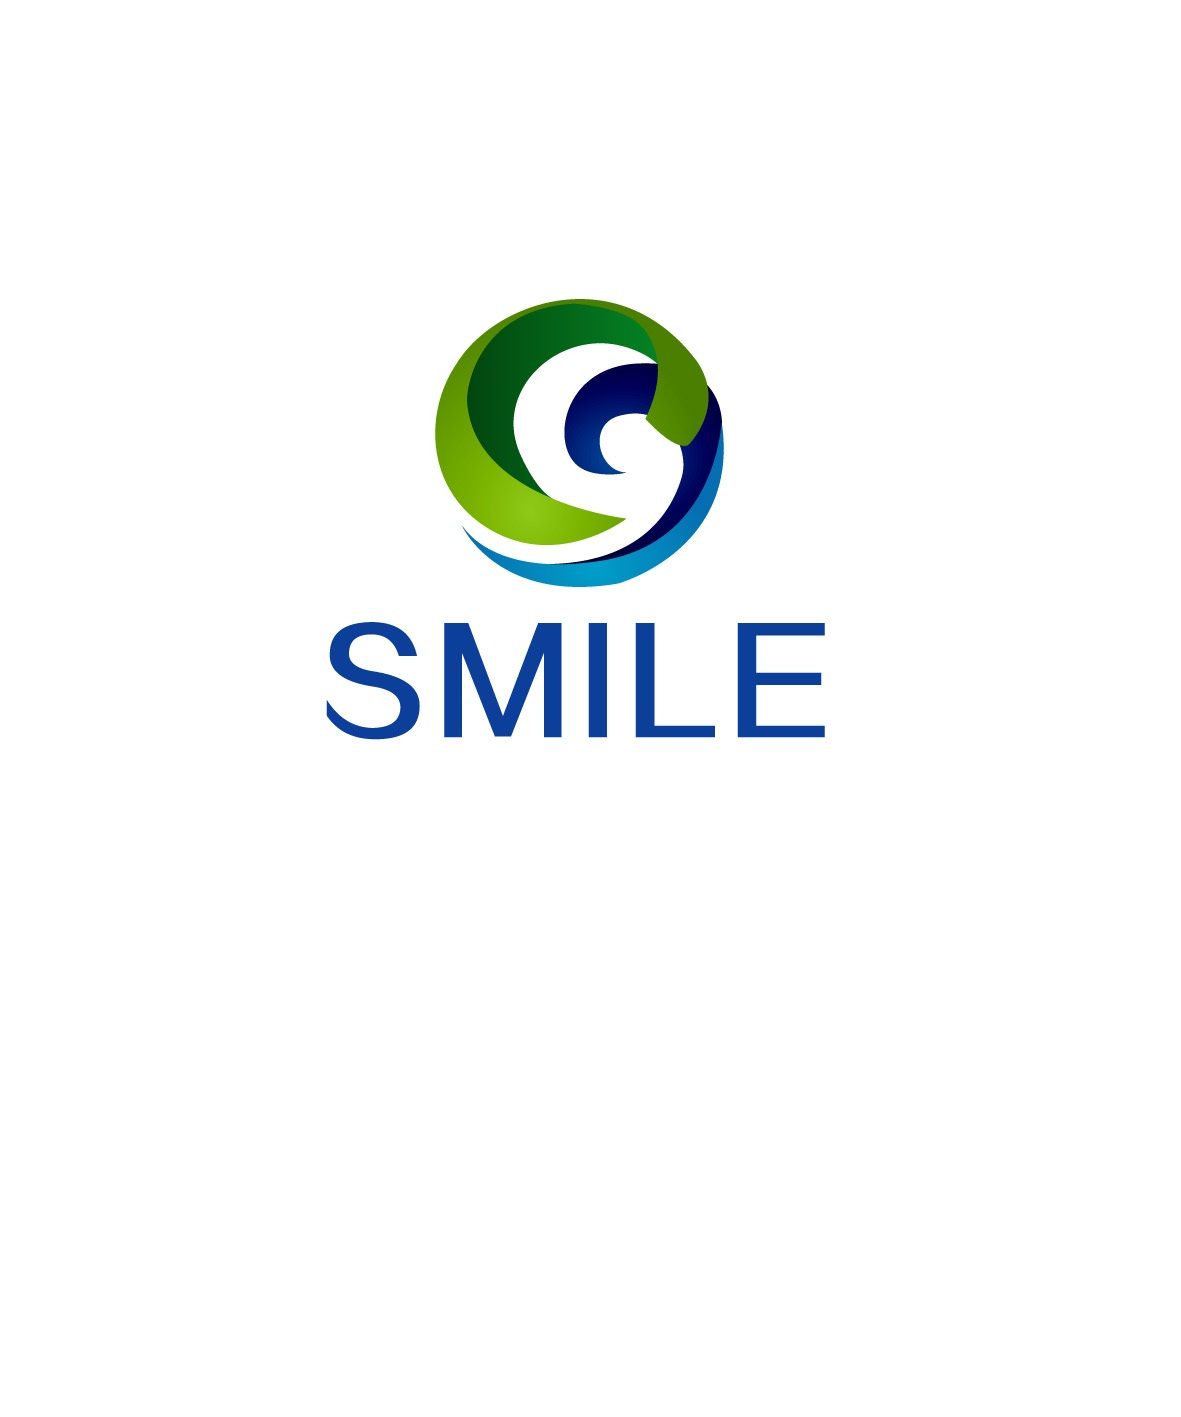 QUANZHOU SMILE IMPORT AND EXPORT TRADING CO.,LTD